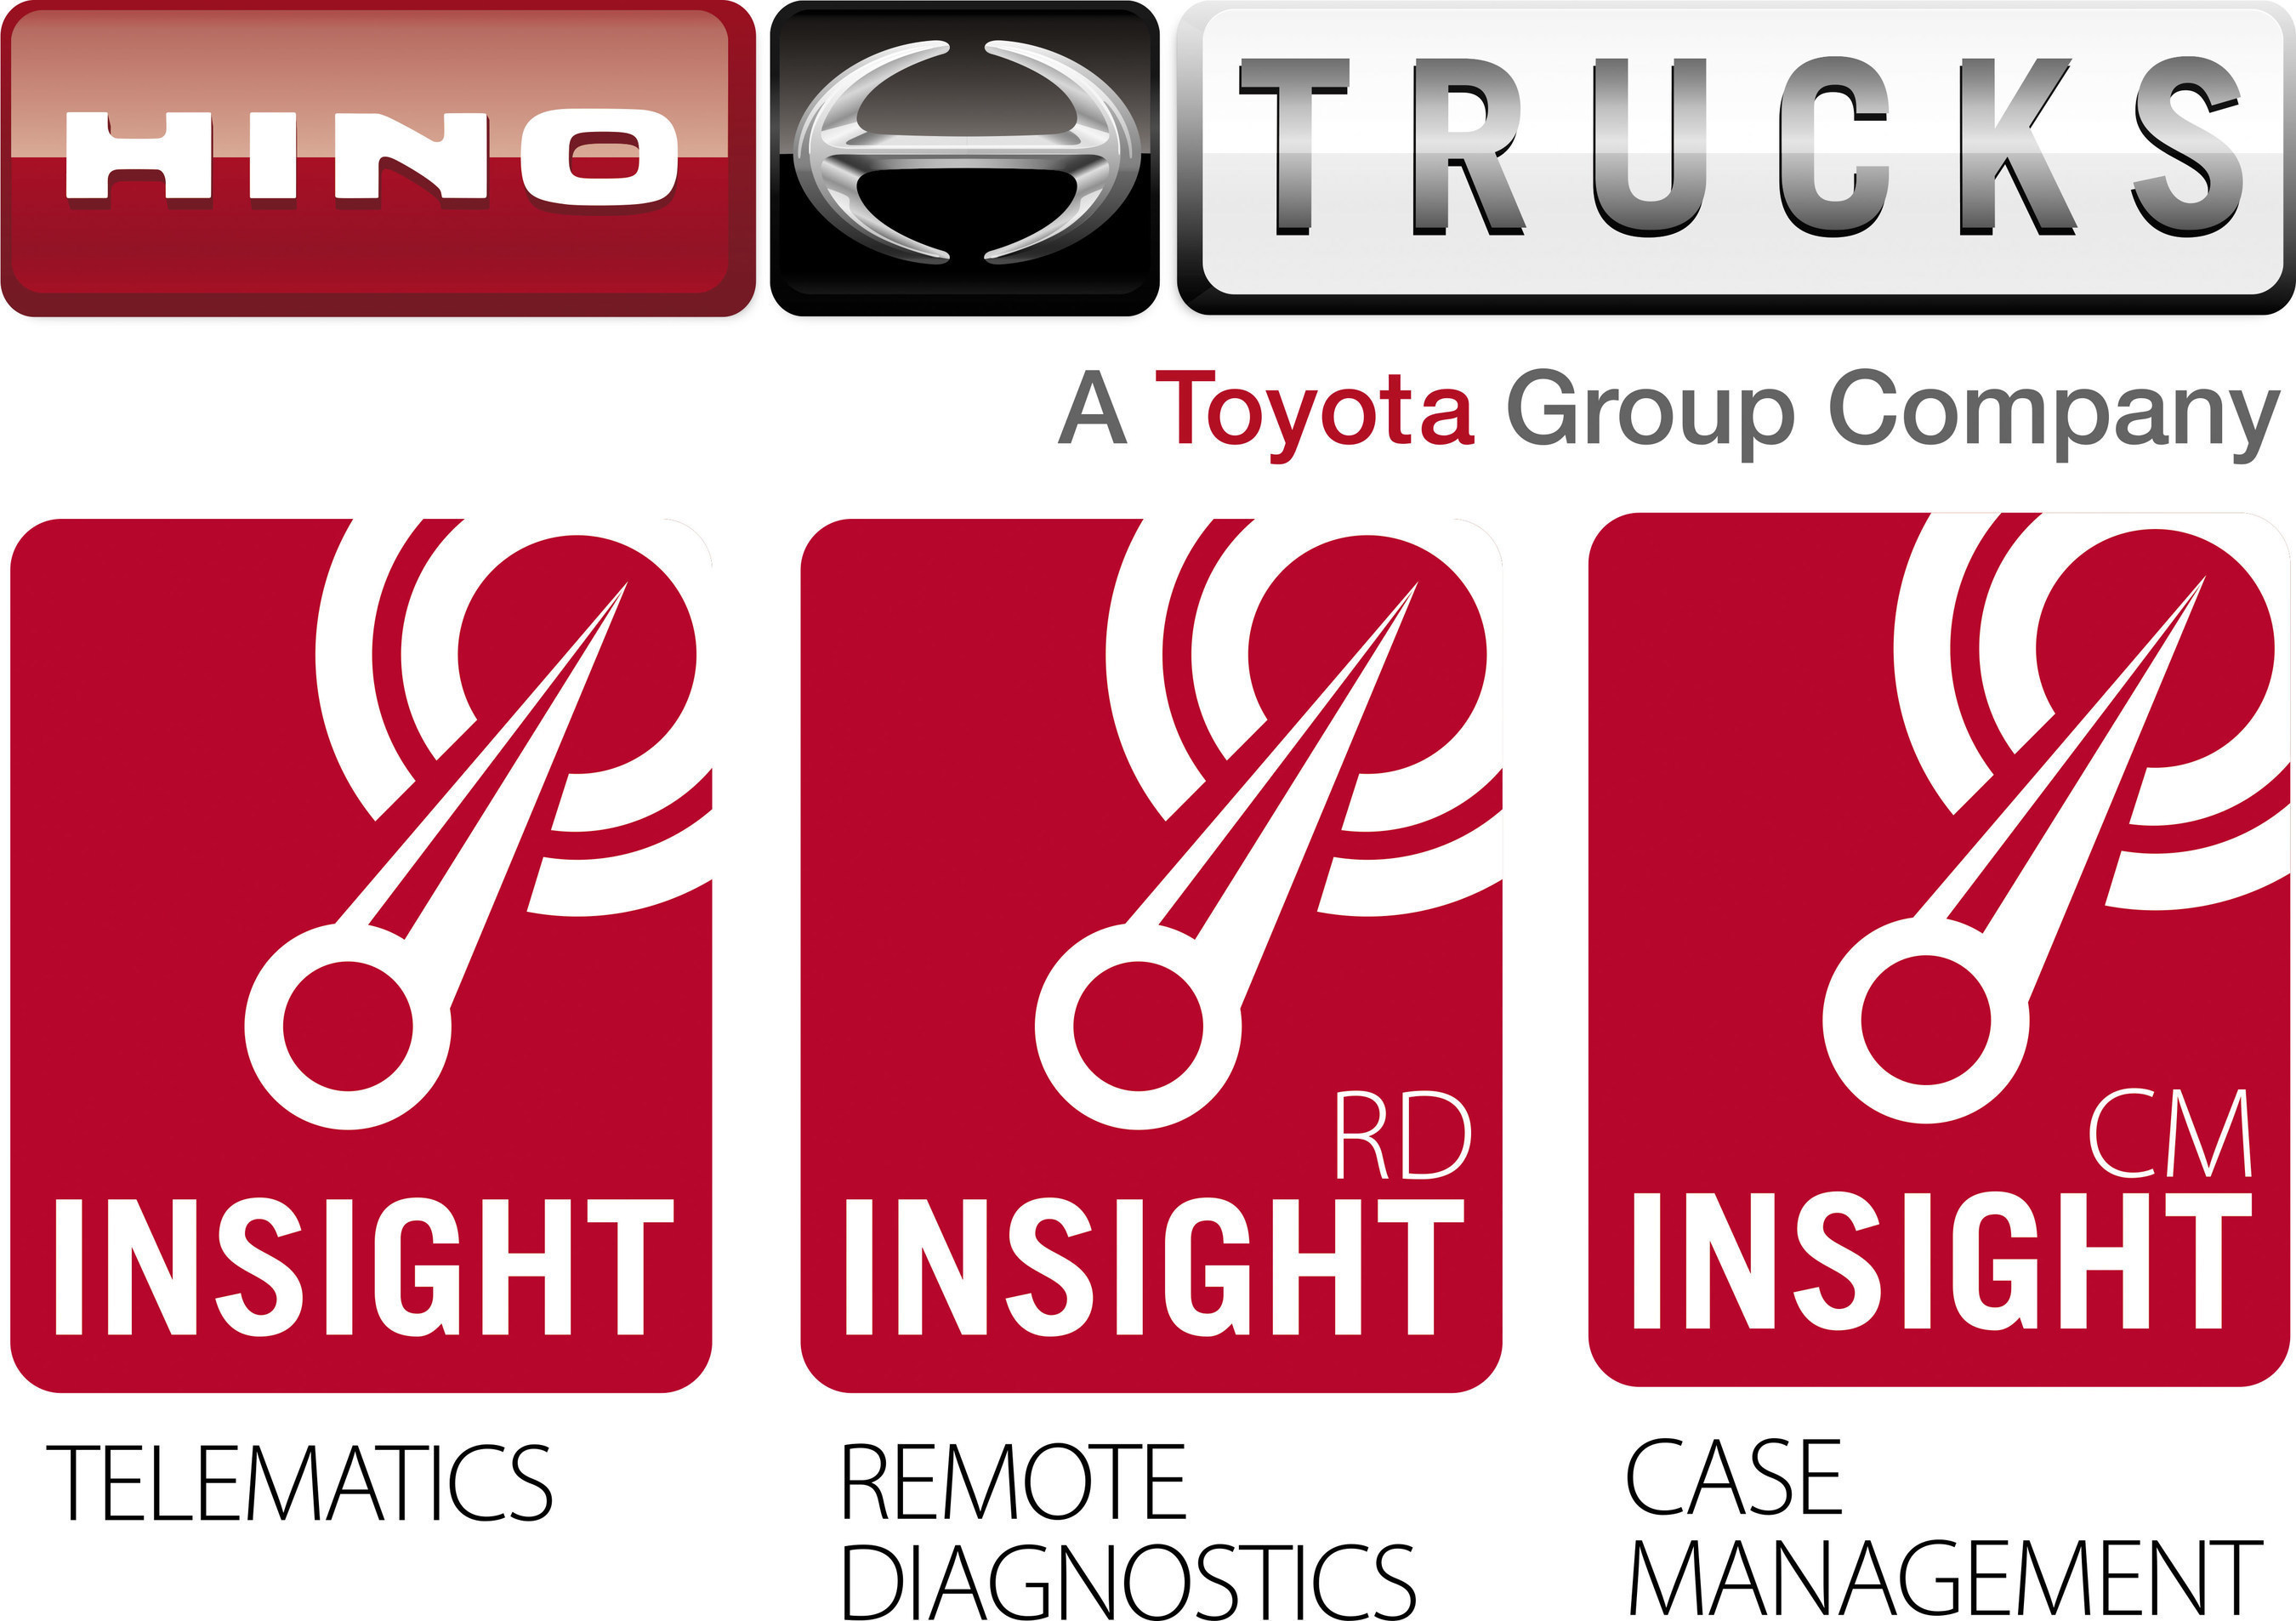 Hino Trucks Expands INSIGHT Platform With Remote Diagnostics And Case Management As Standard Features